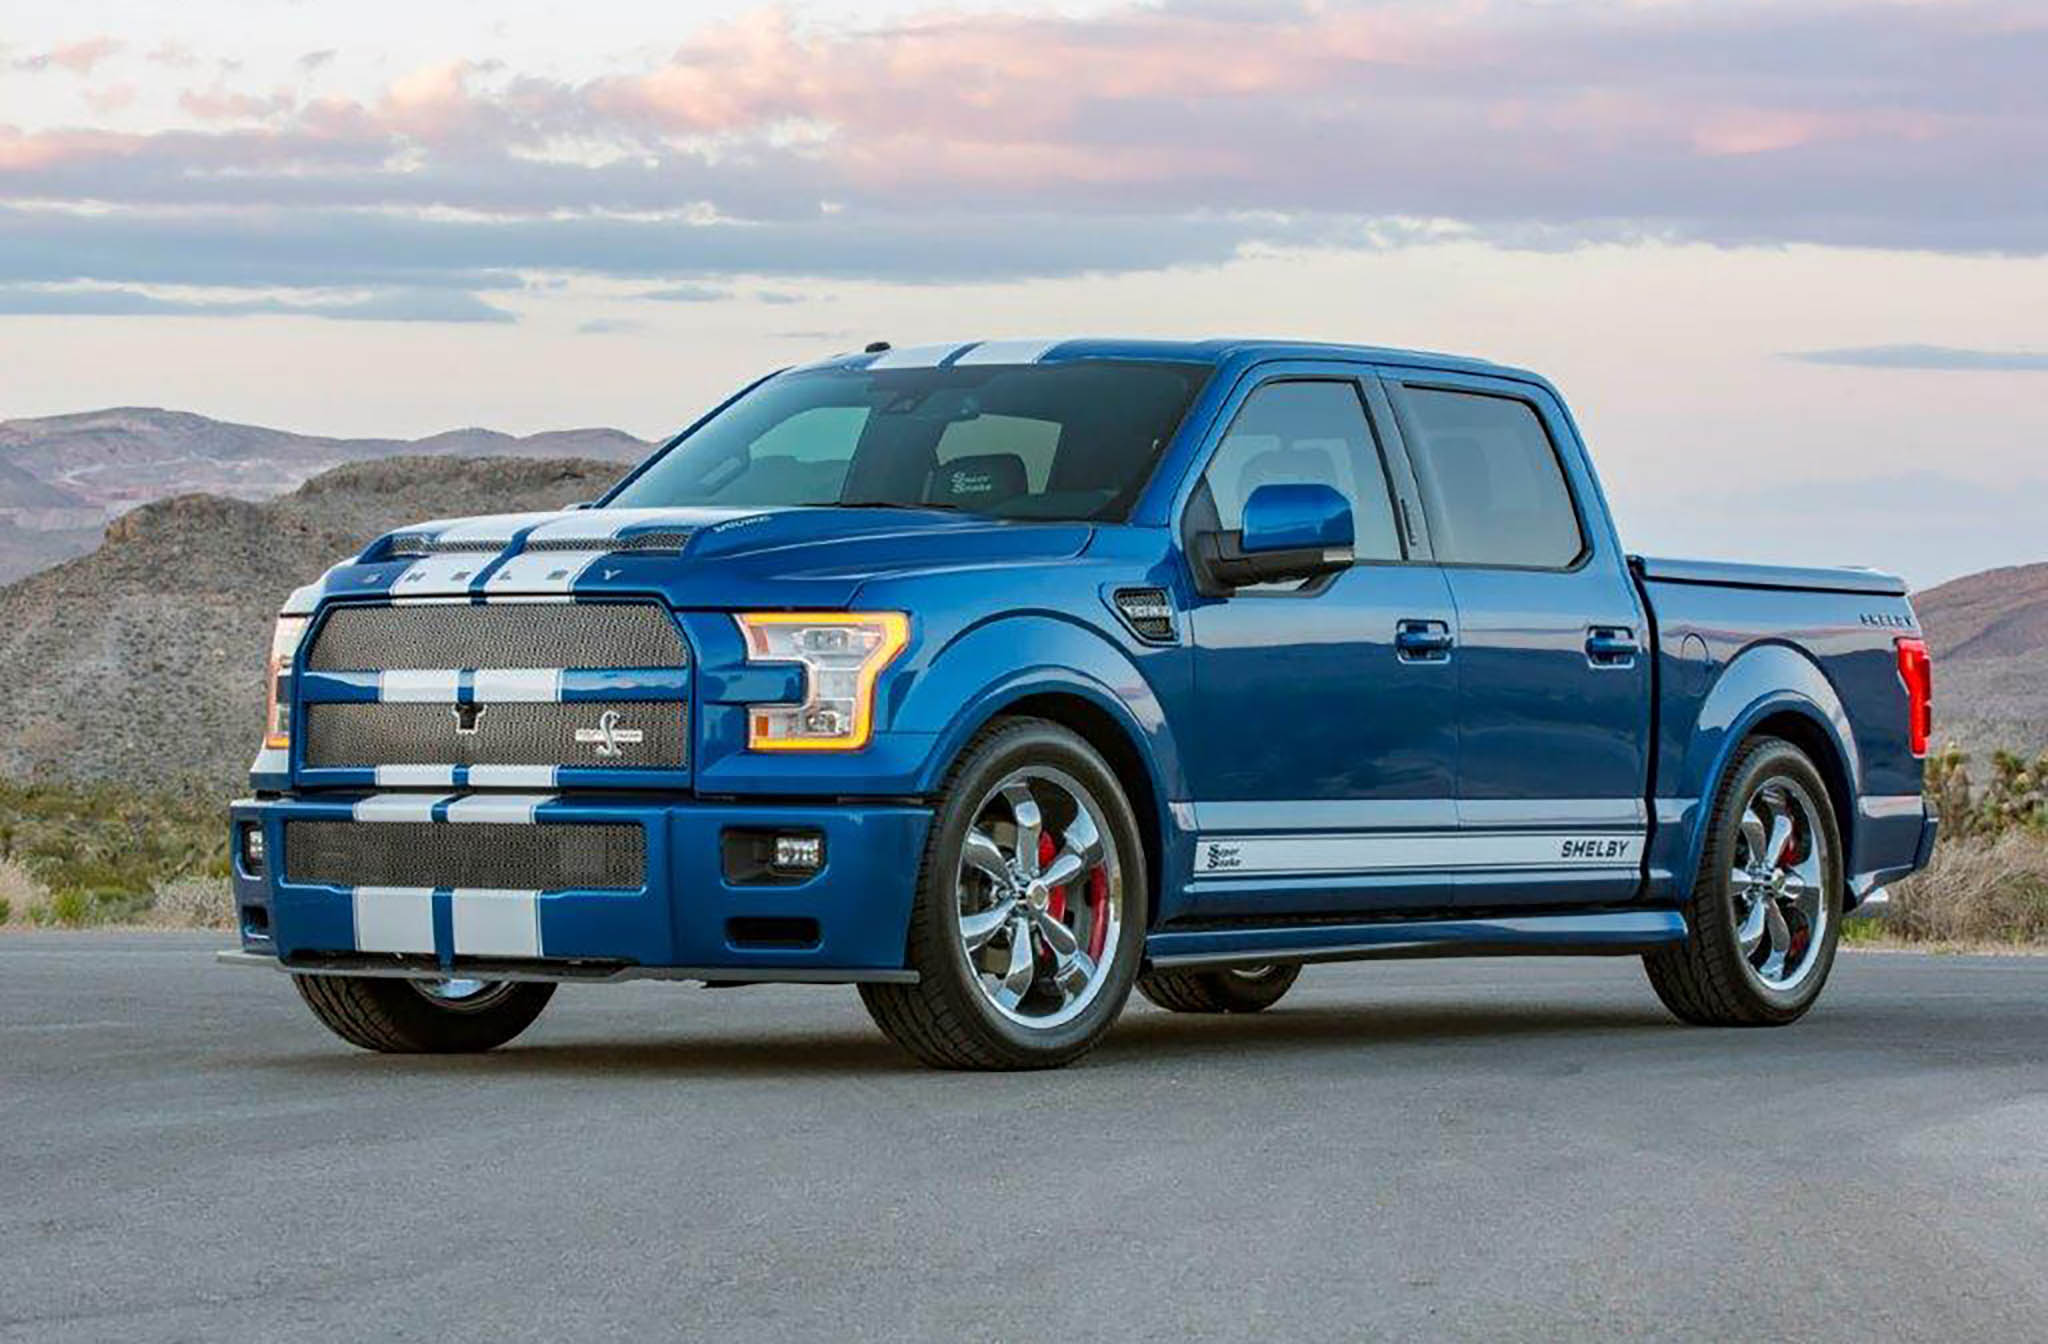 Shelby F 150 Super Snake Truck Front